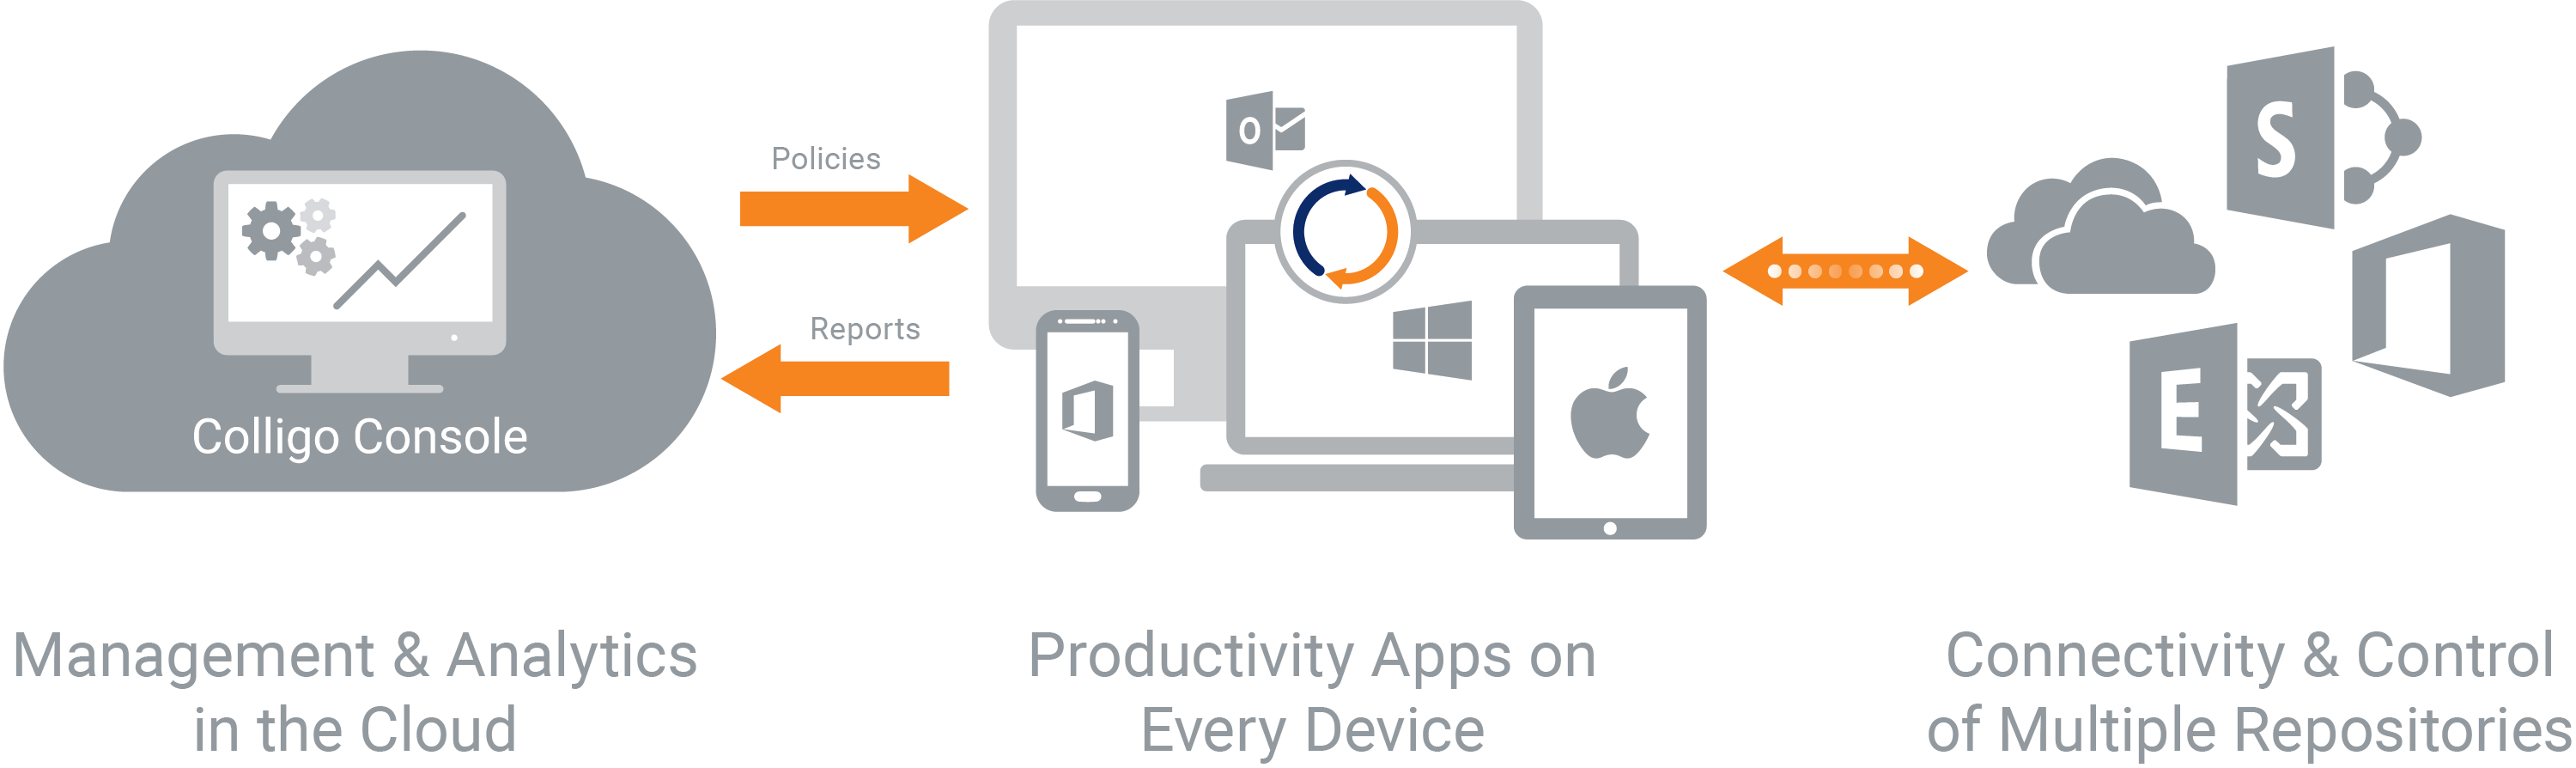 Products | Sharepoint Mobile Apps | Colligo